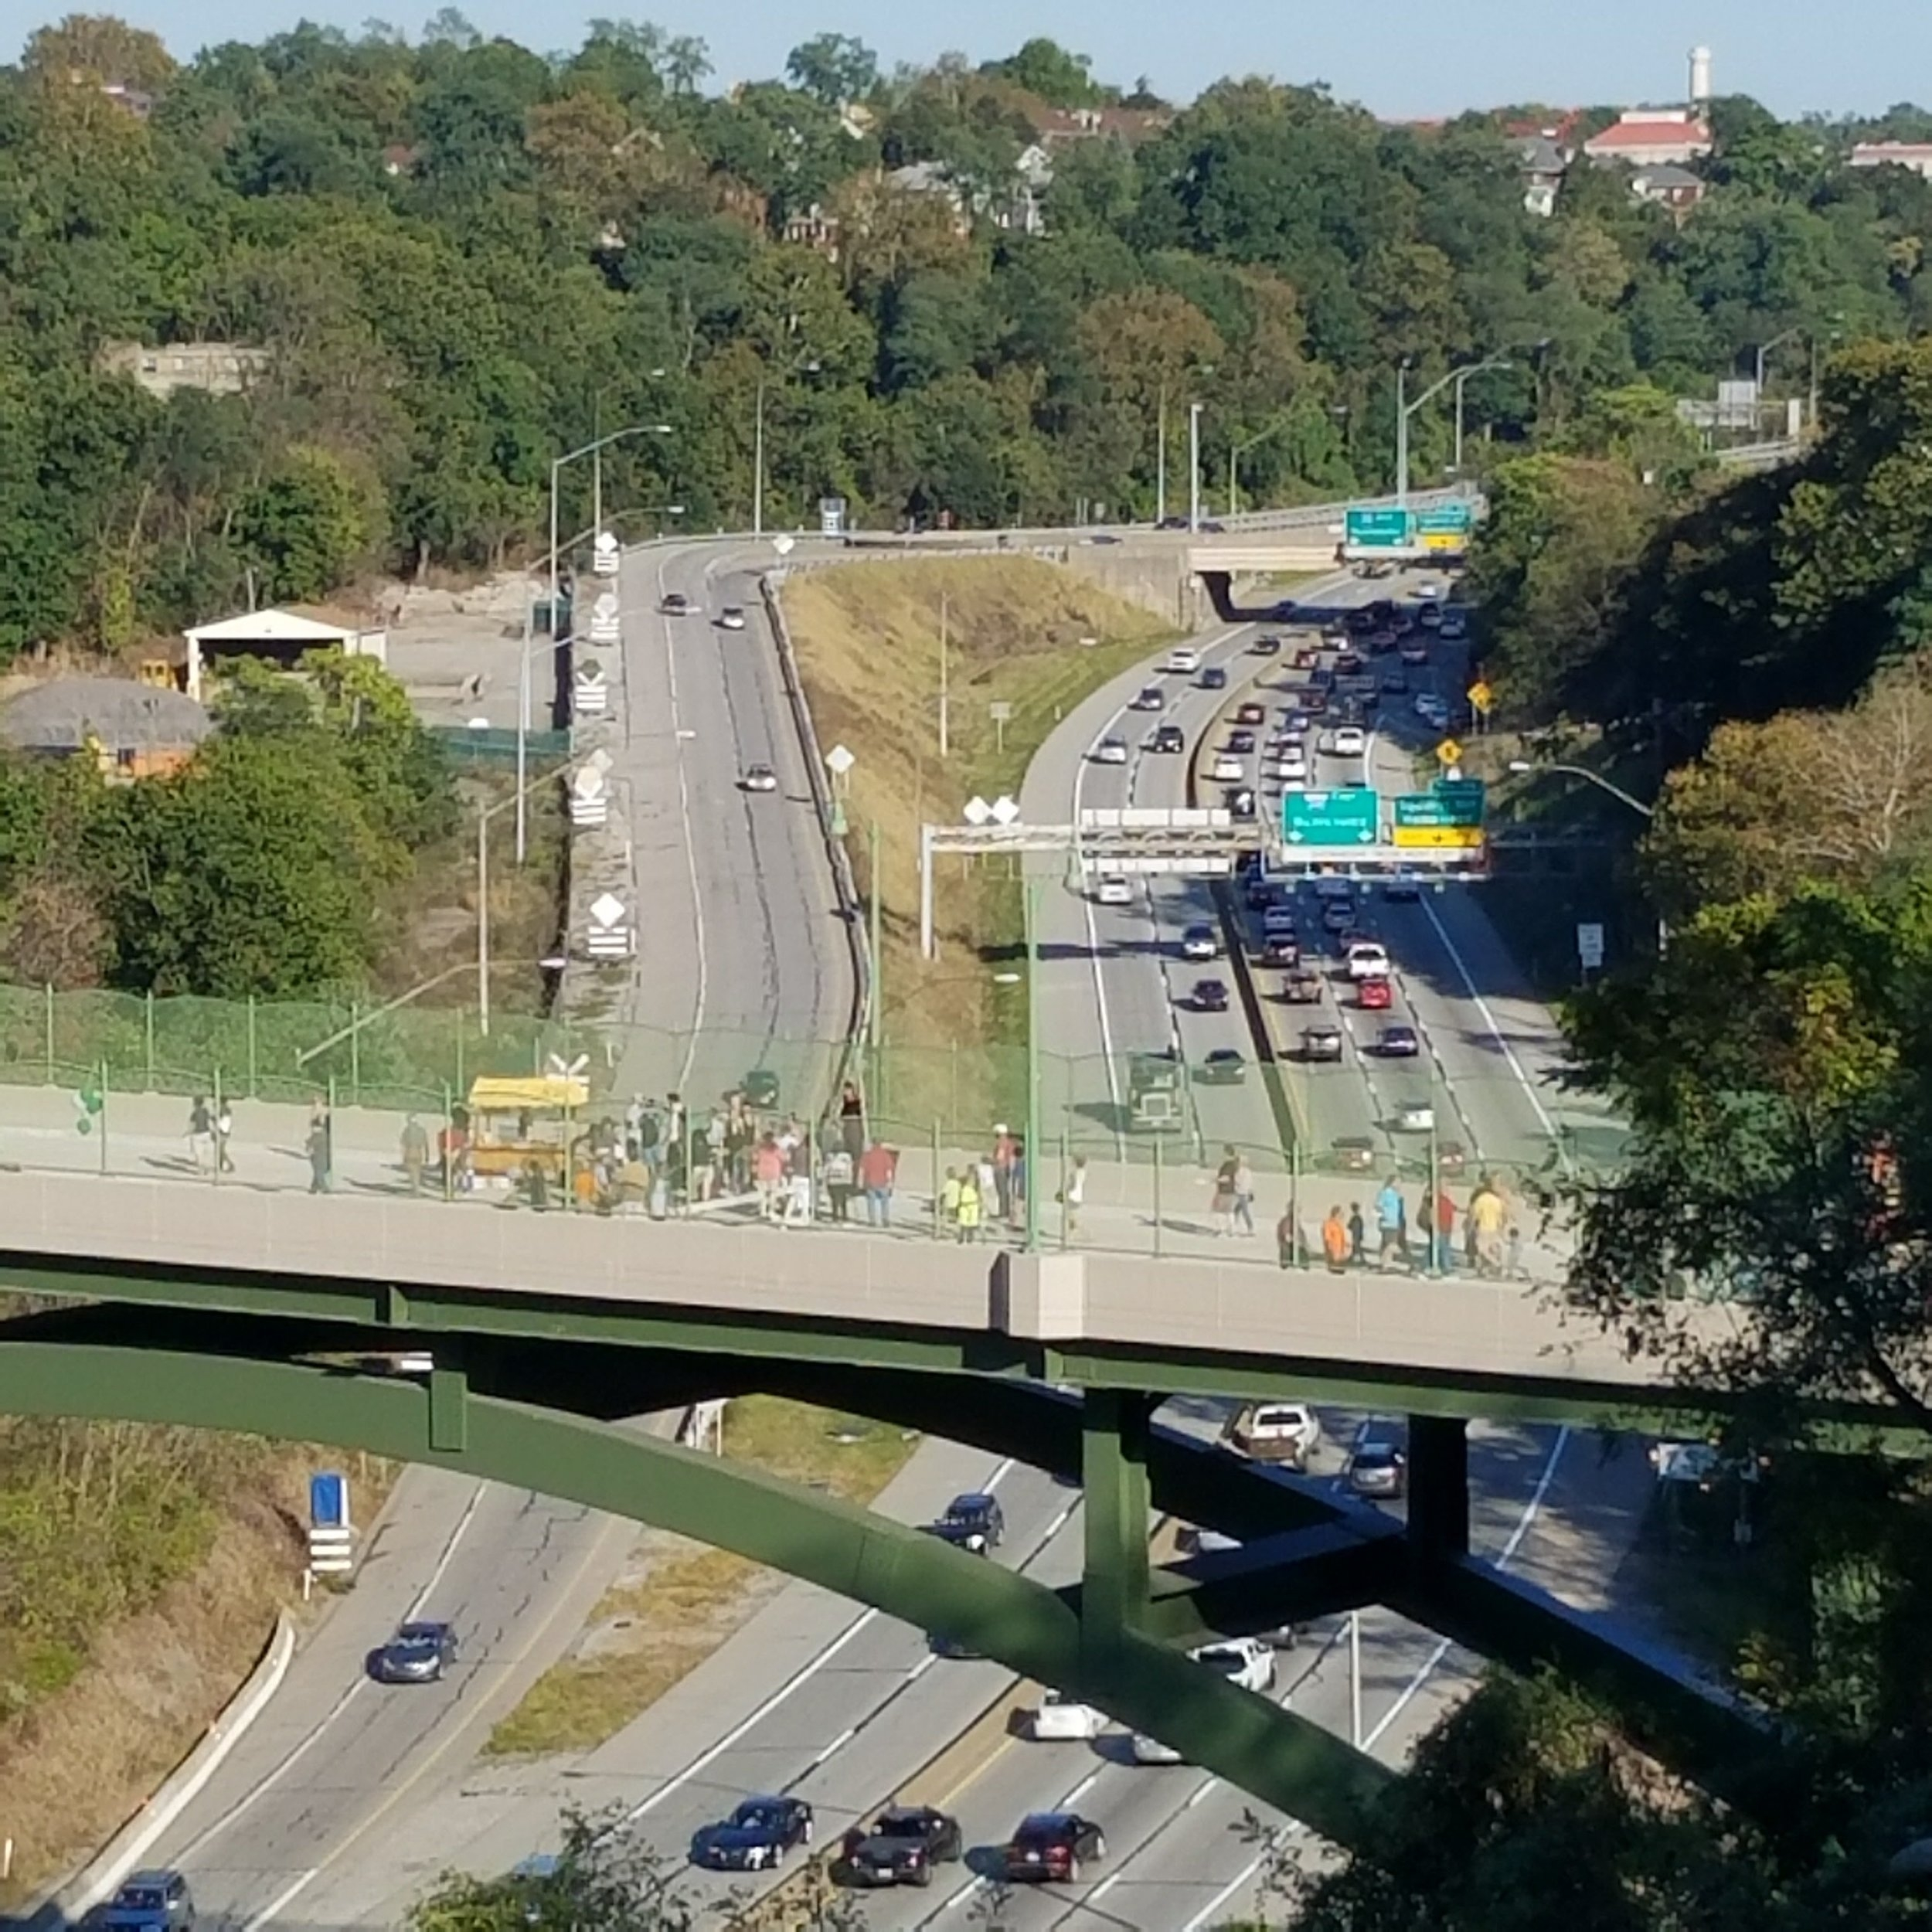 A view of the Bridge from Winterburn Ave